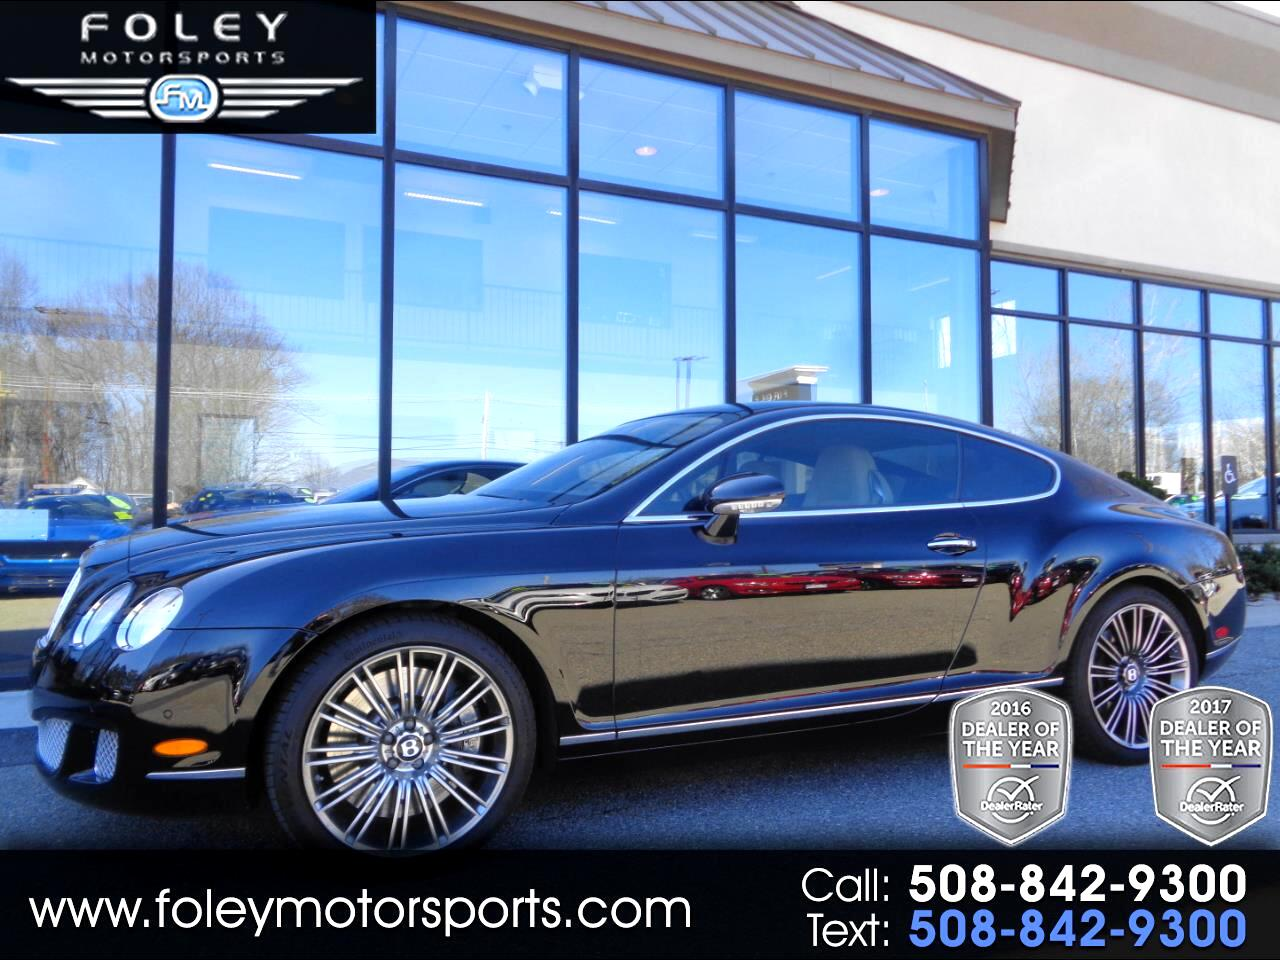 2008 Bentley Continental GT 2dr Cpe Speed